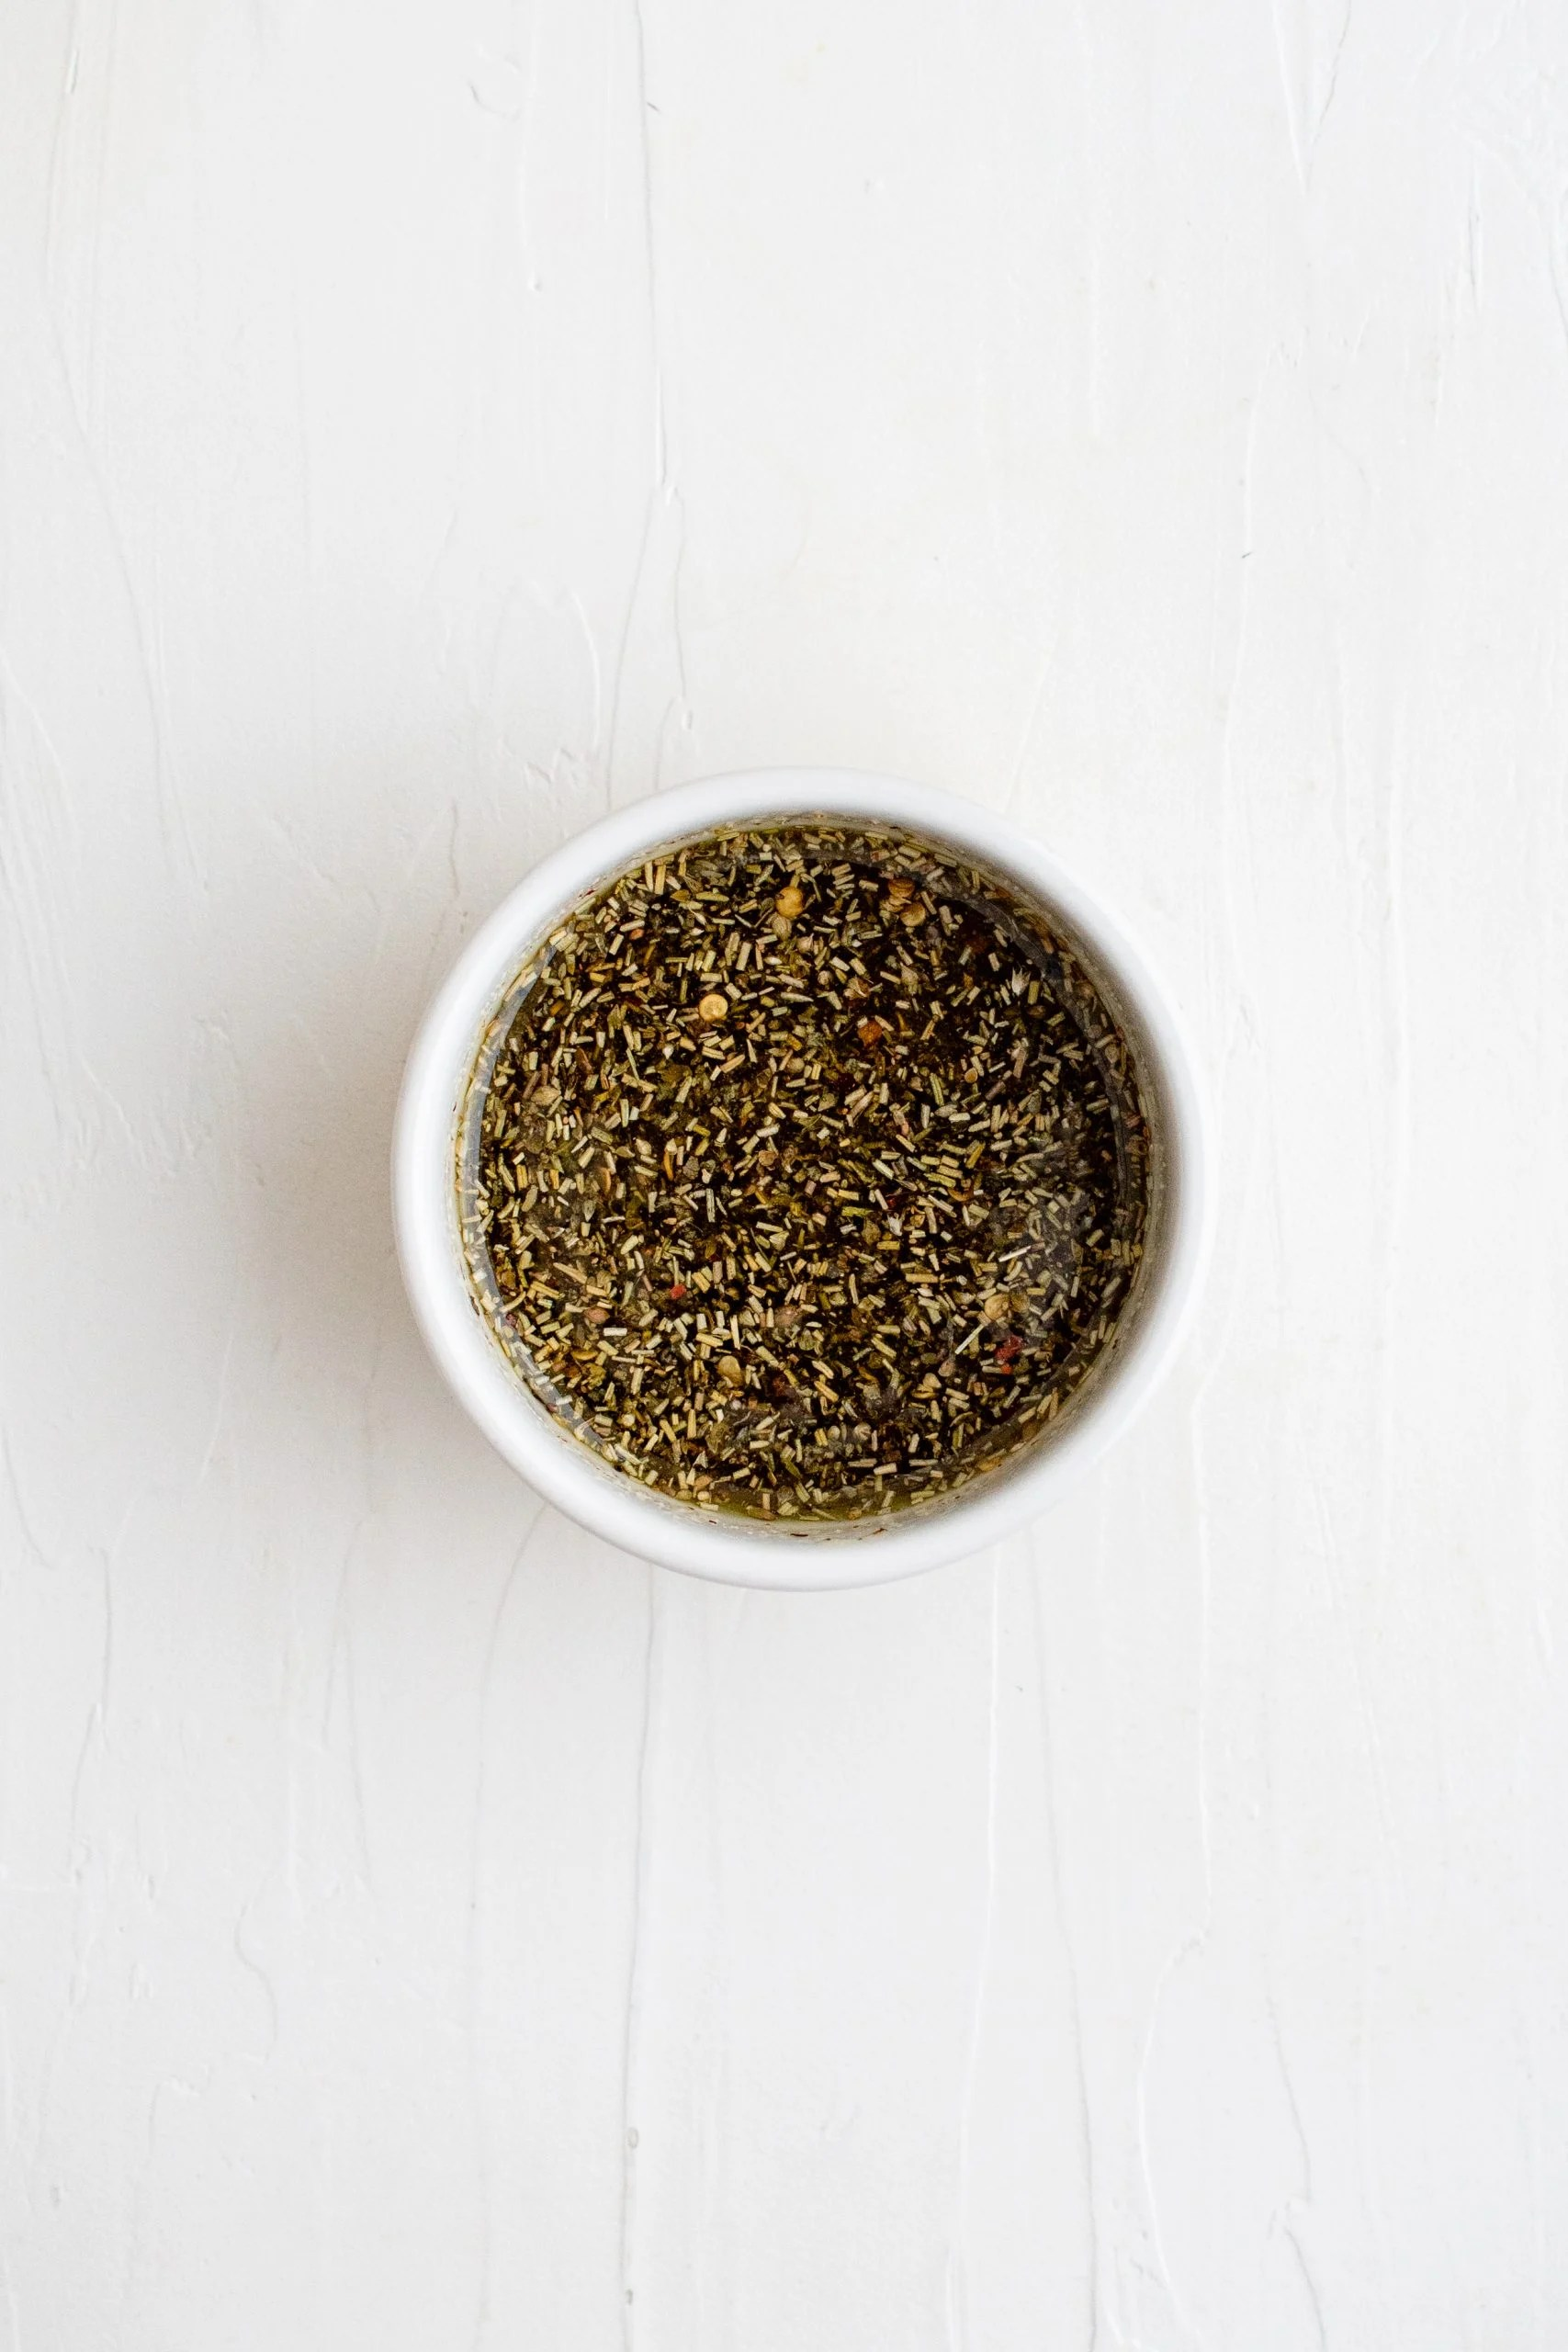 picture of herbs mixed in a bowl